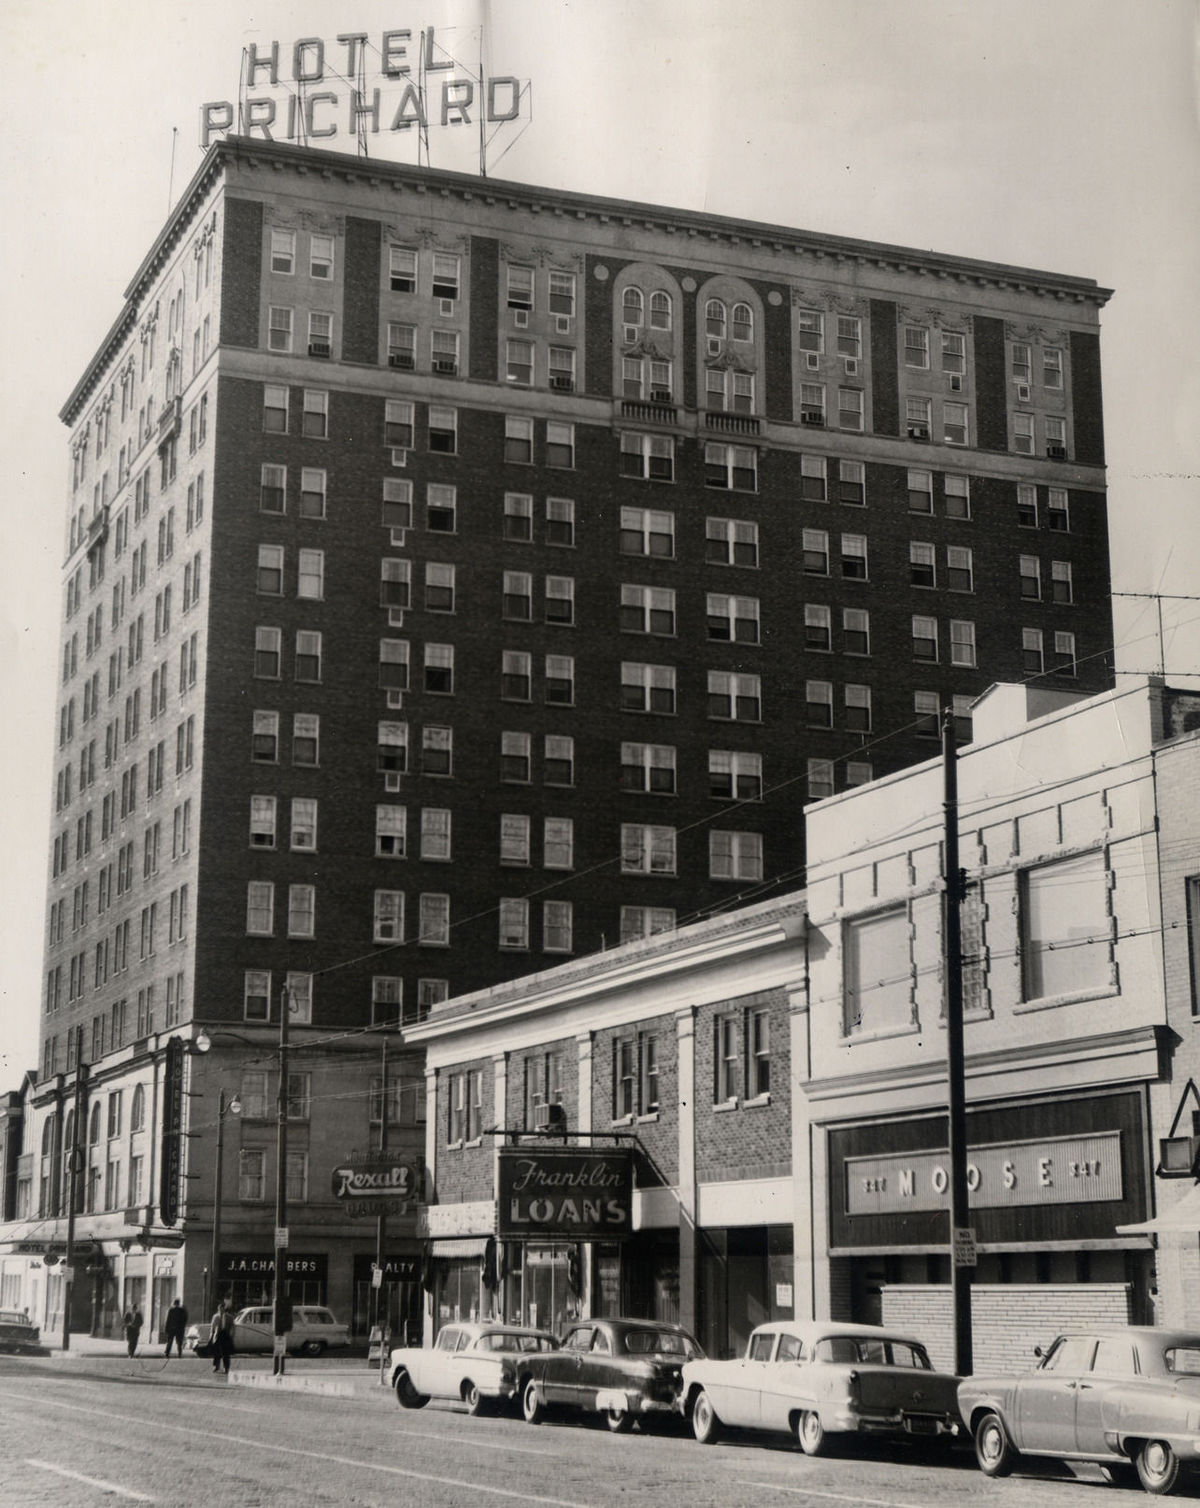 The hotel in the 1950s. Many high school students remember attending proms and dances at the hotel.